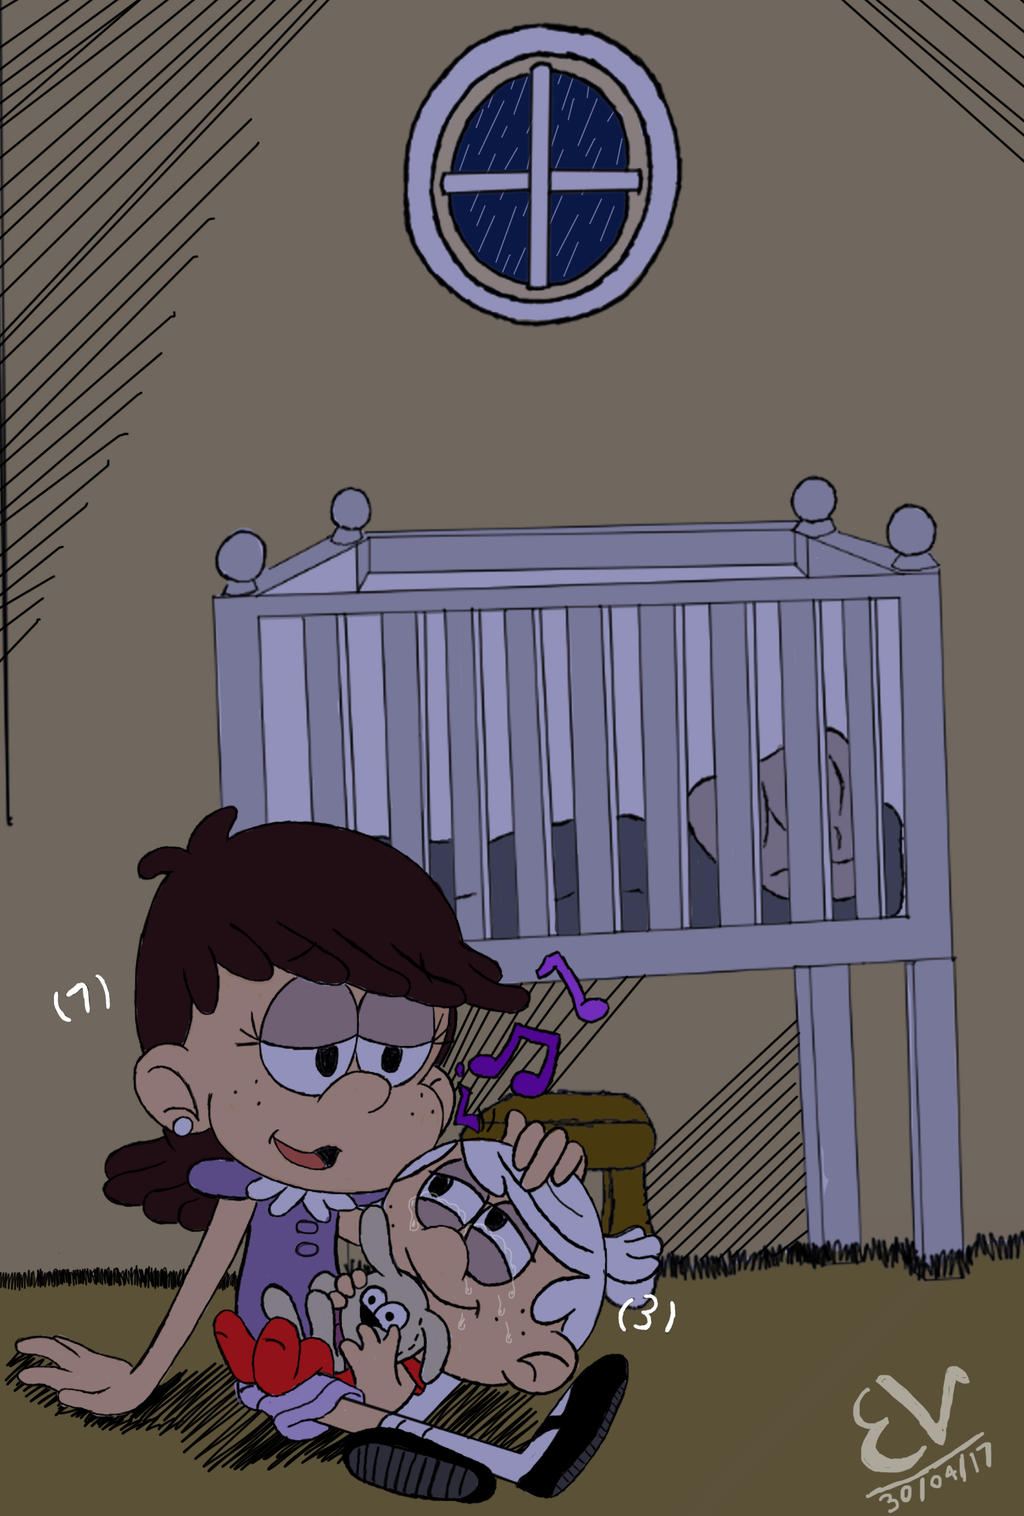 The loud house favourites by thejayster49 on deviantart for Comfort house